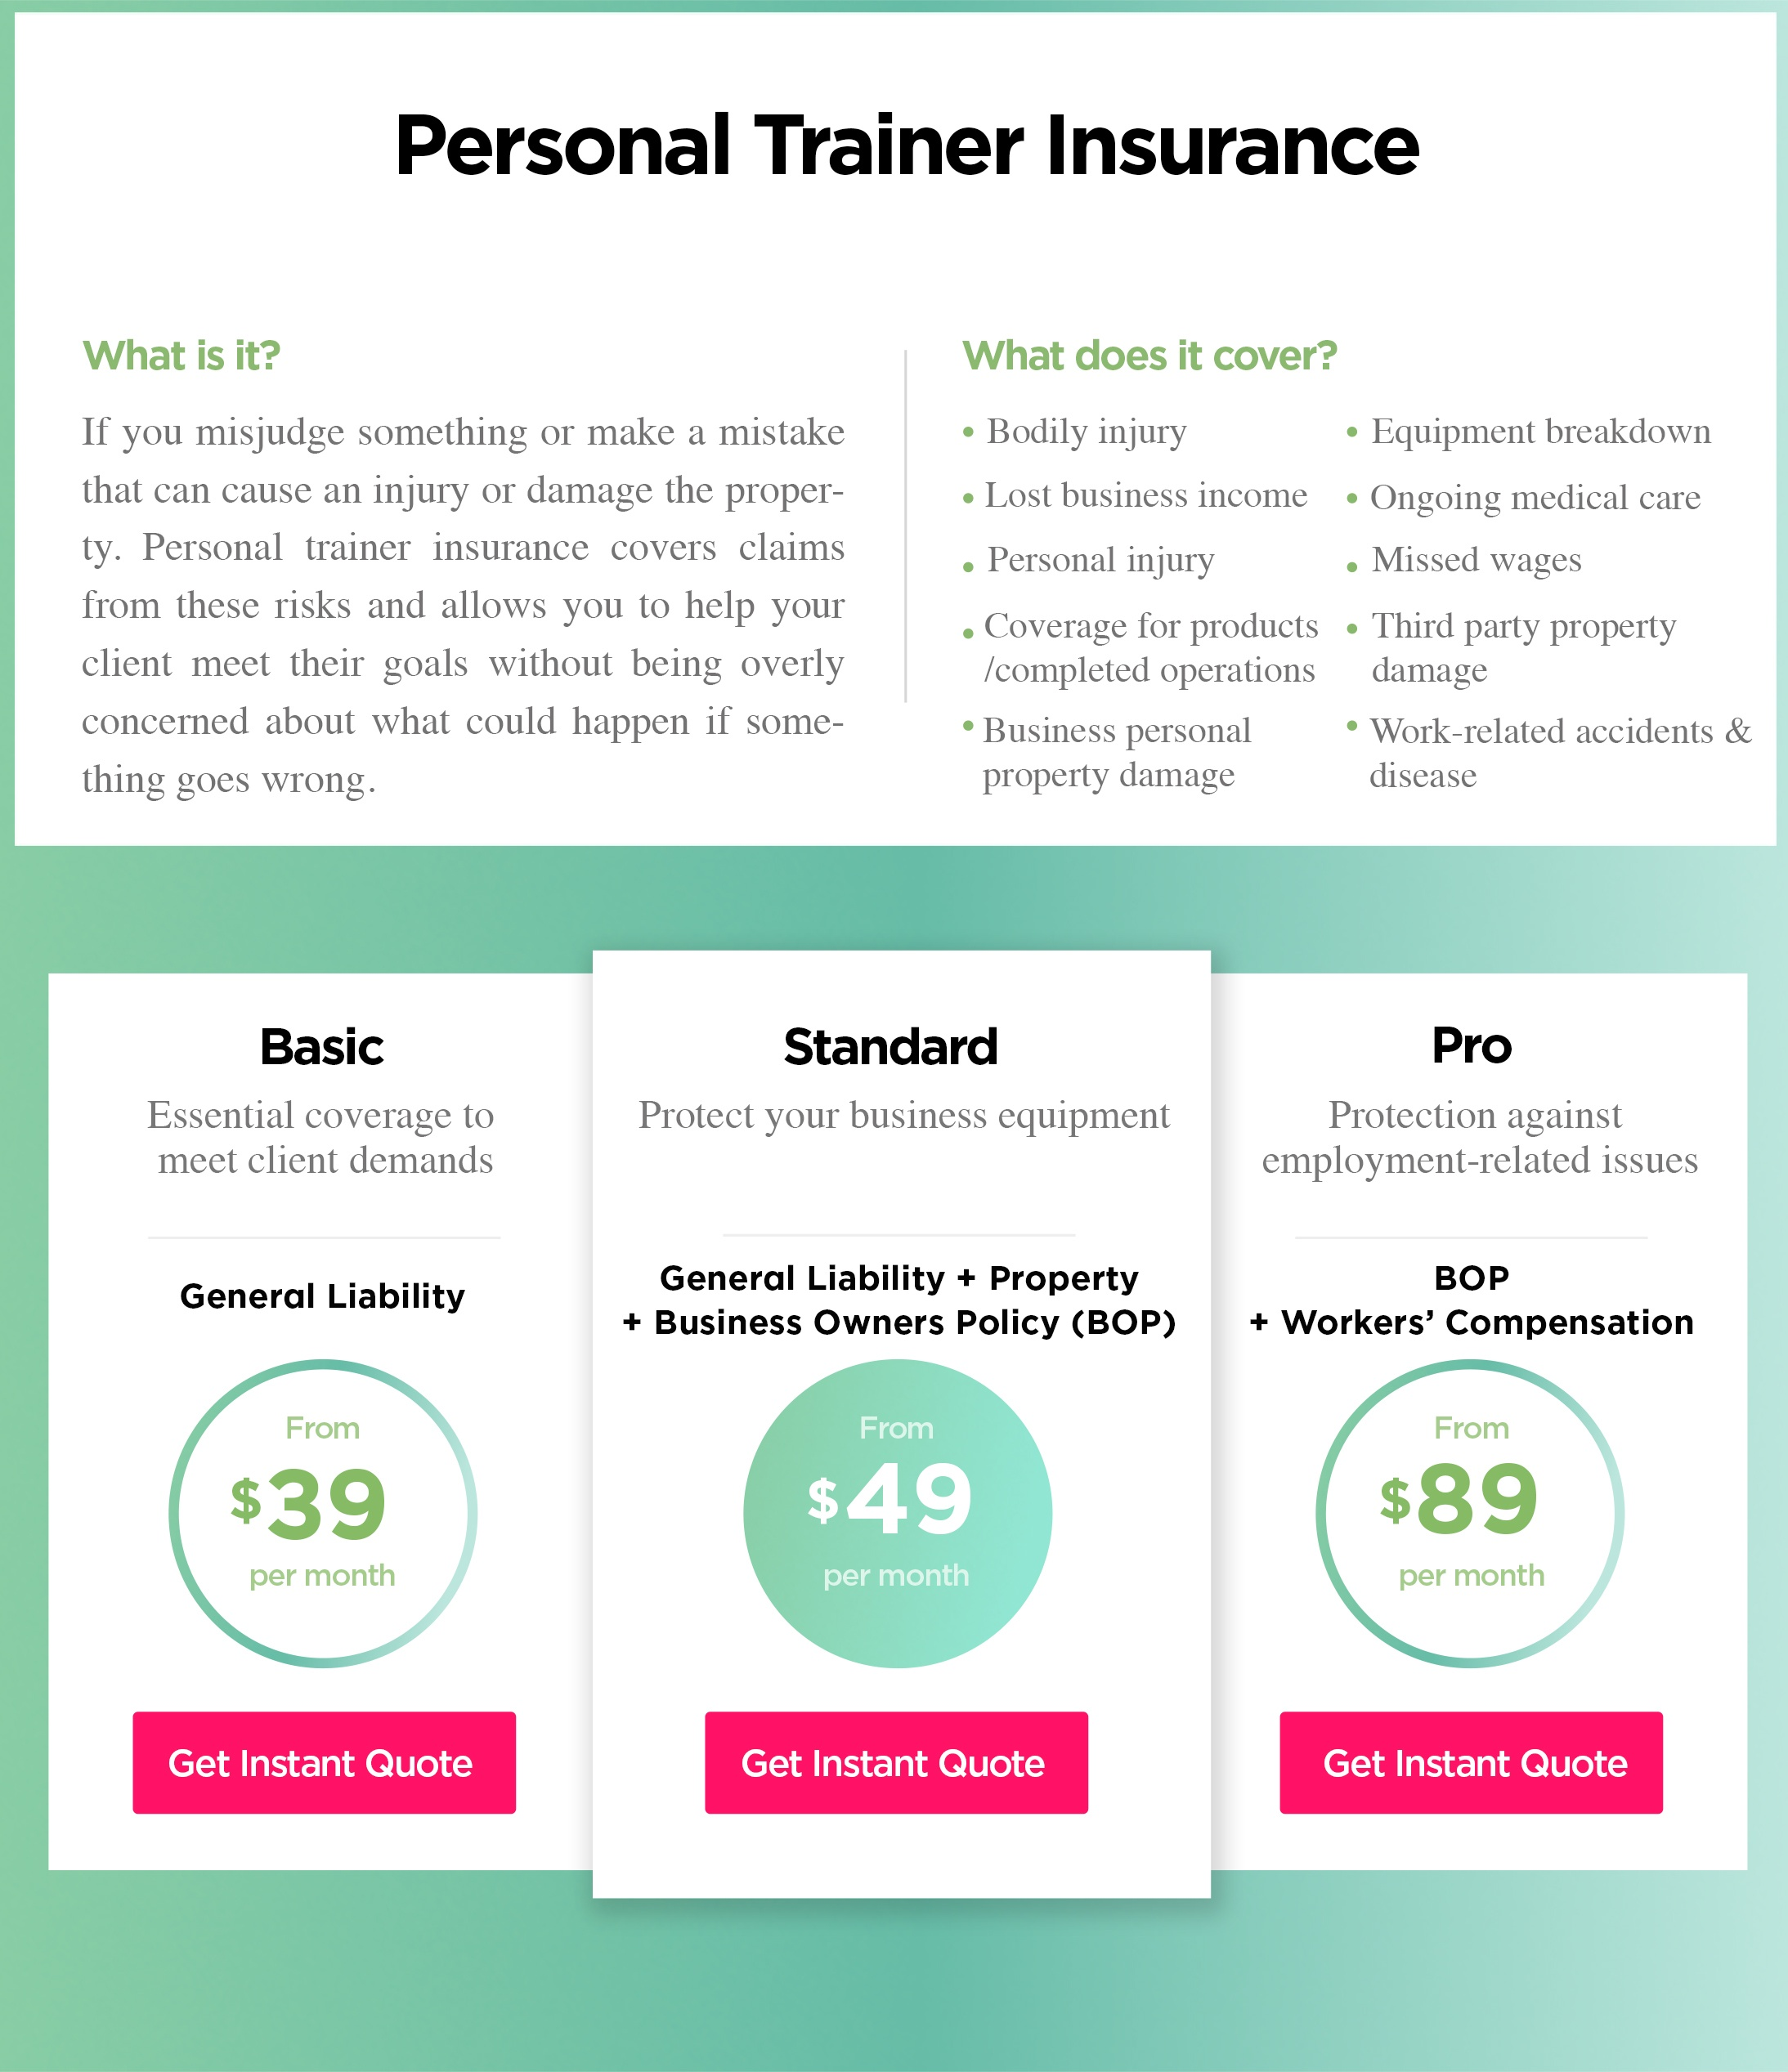 How much does personal trainer insurance cost?